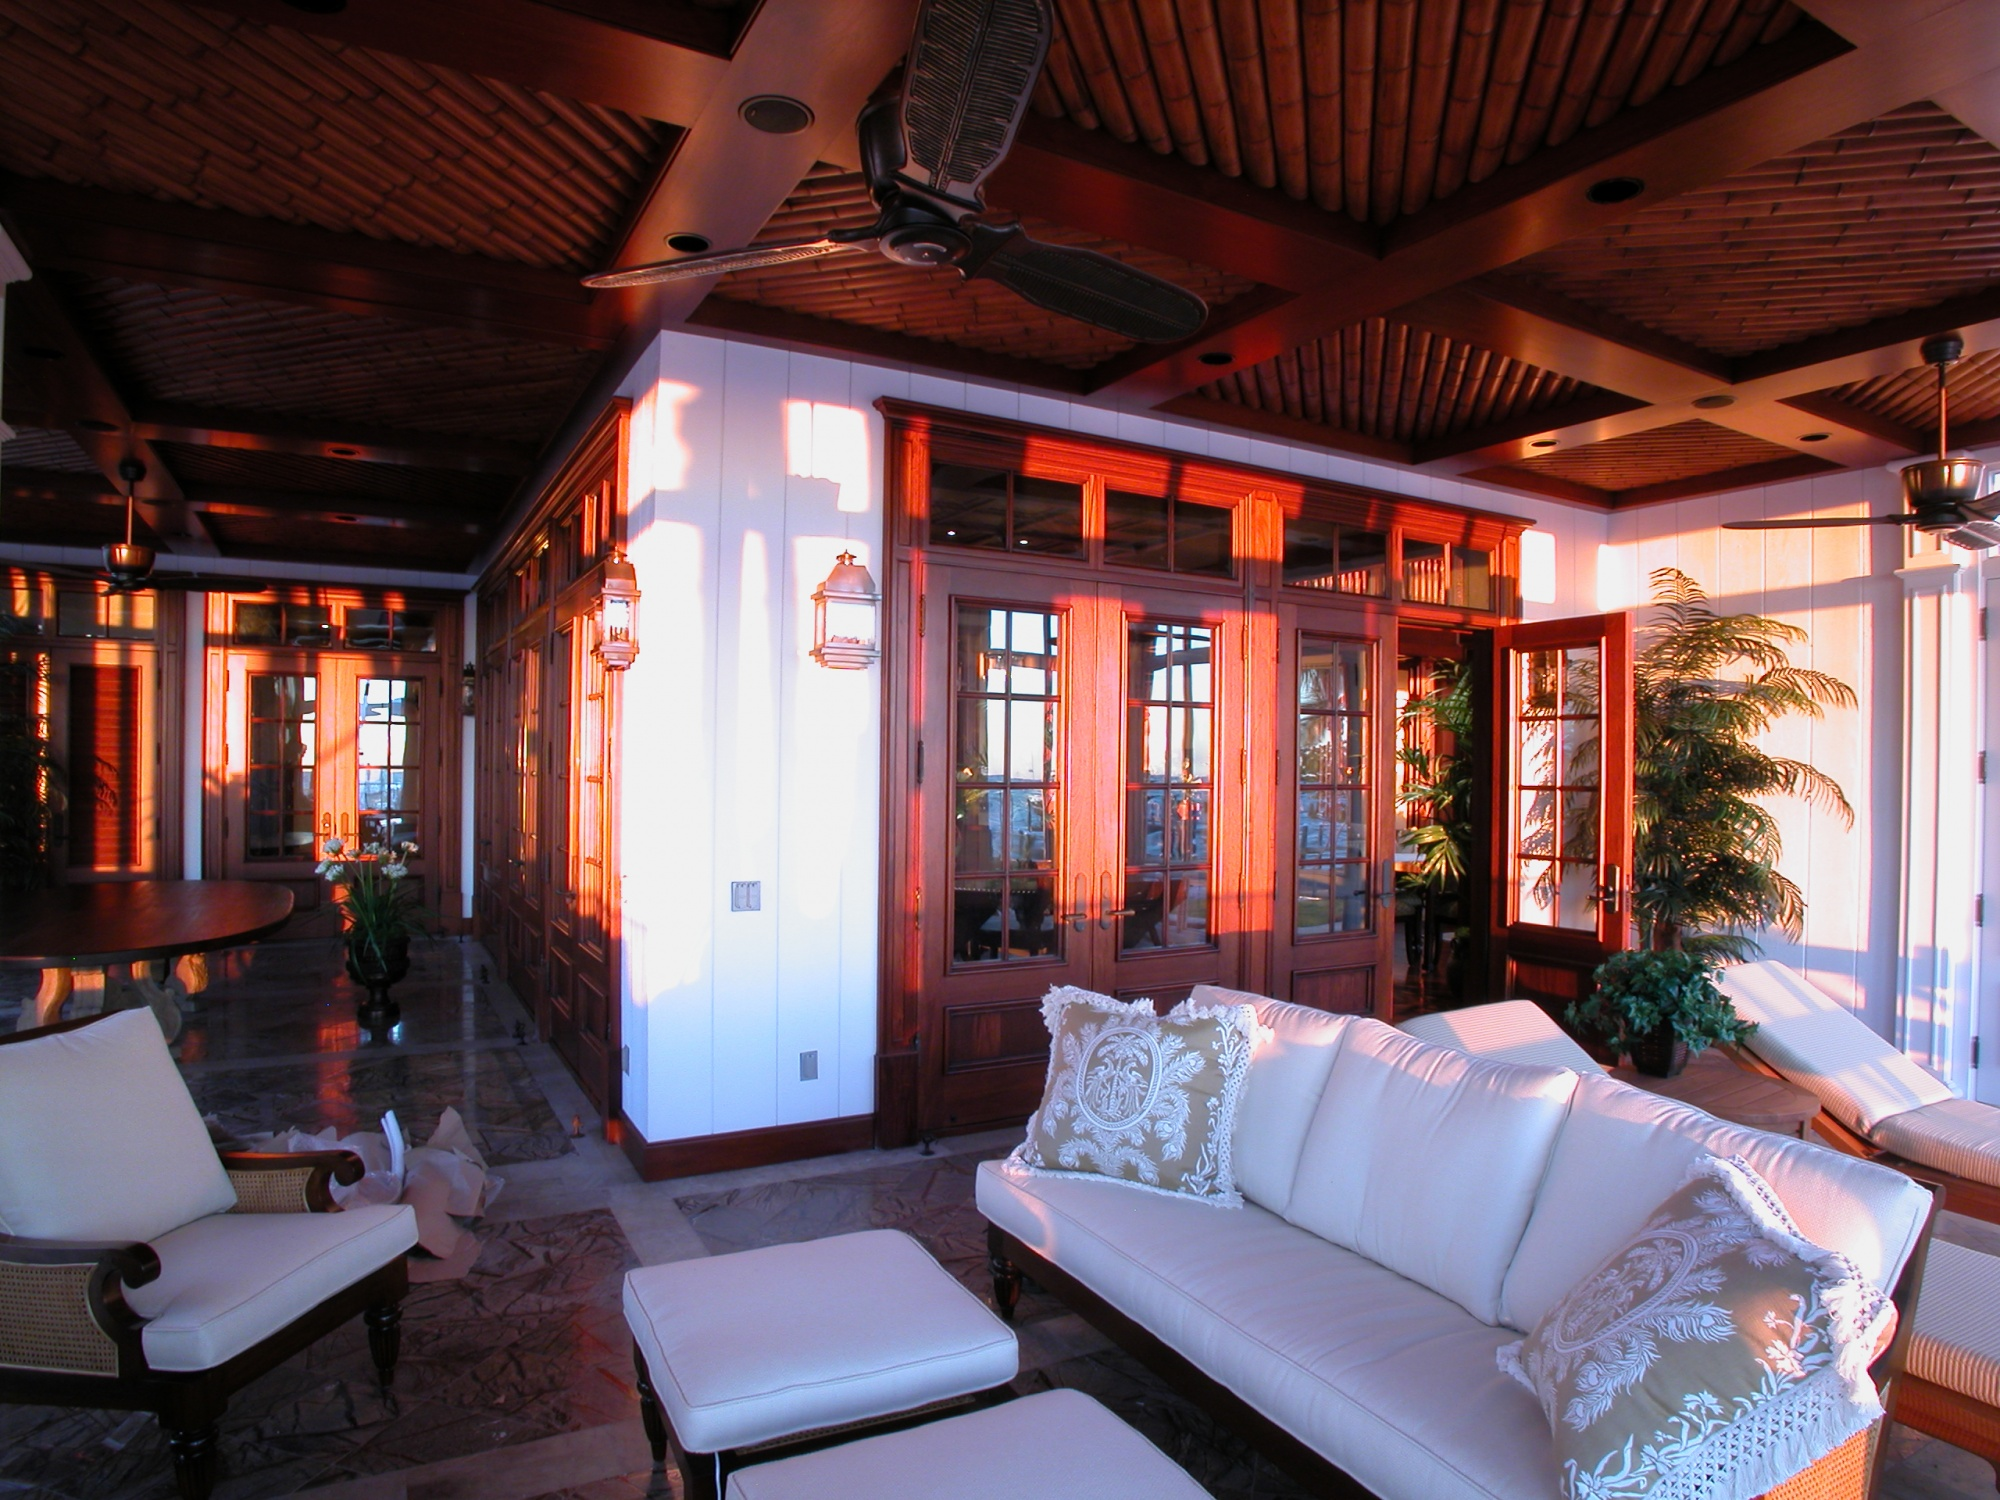 Bamboo ceilings are featured within the ocean side screen porch.